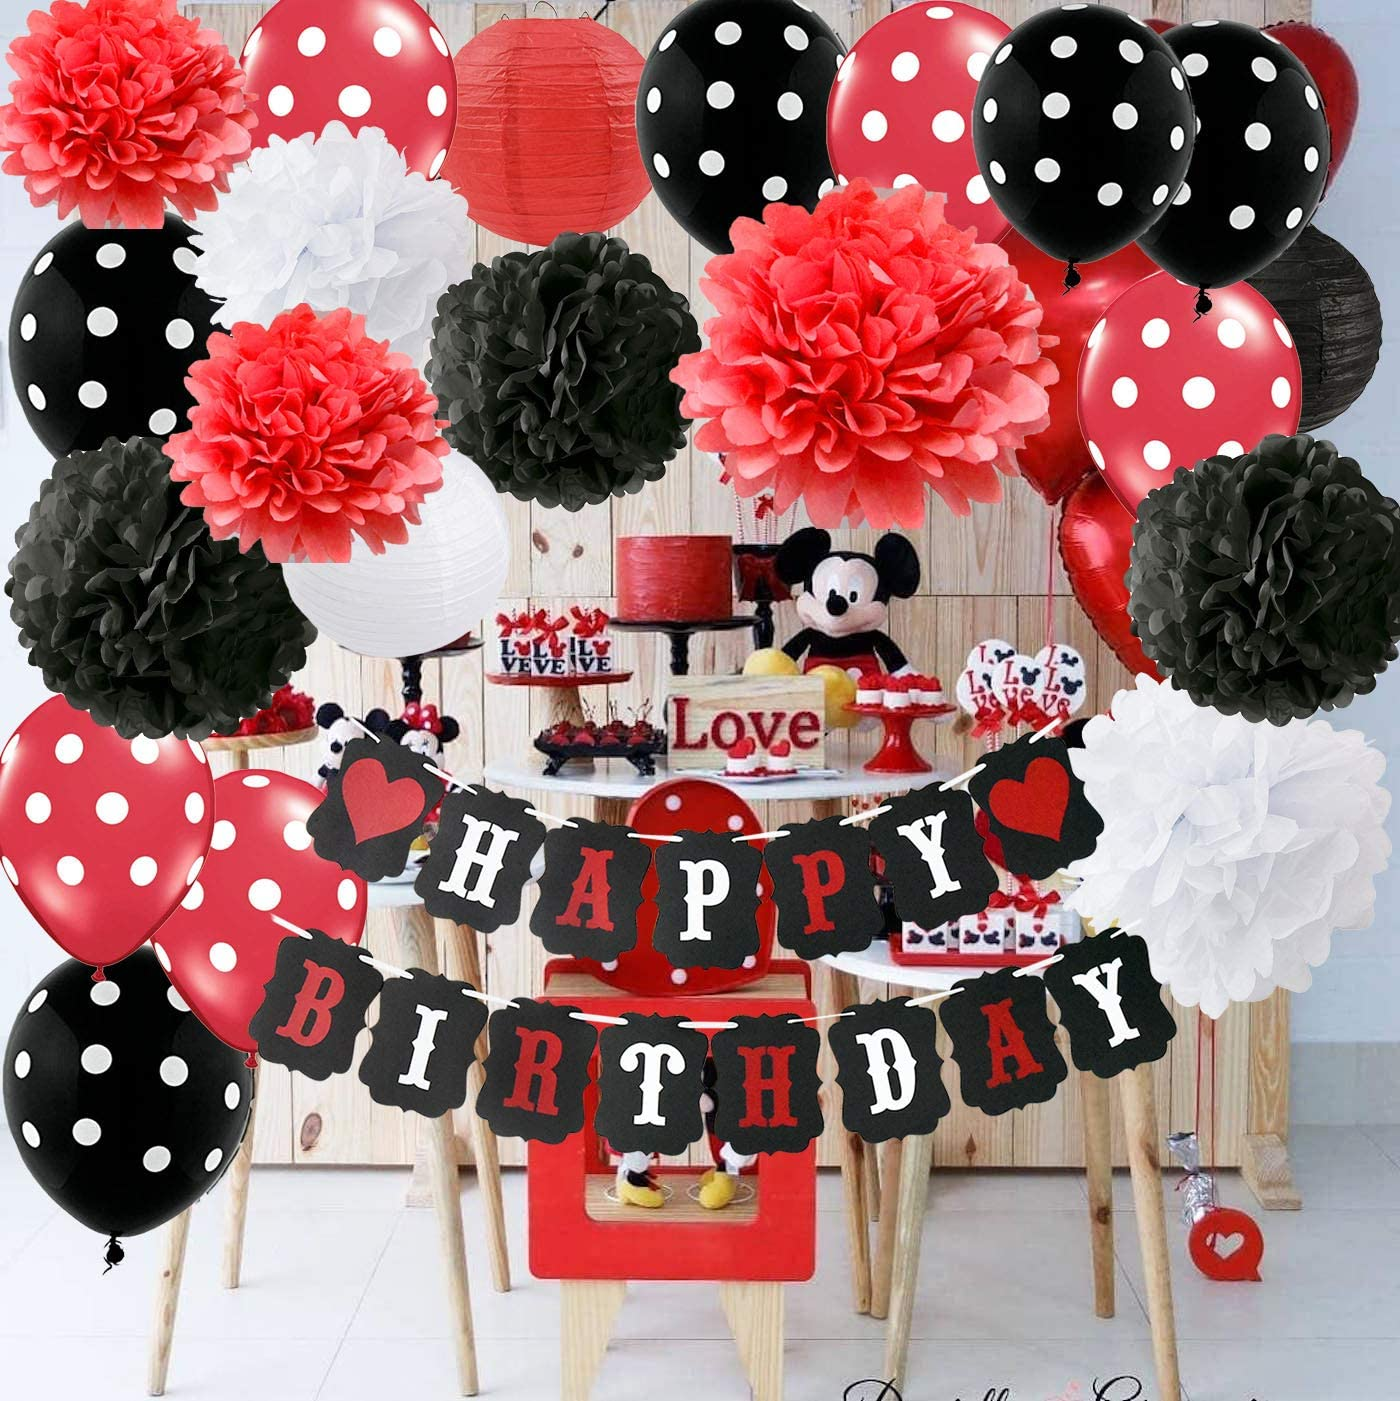 Amazon Com Red Mickey Mouse Birthday Party Decorations White Black Minnie Supplies Tissue Paper Pom Flowers Lanterns For Happy Baners Kitchen Dining